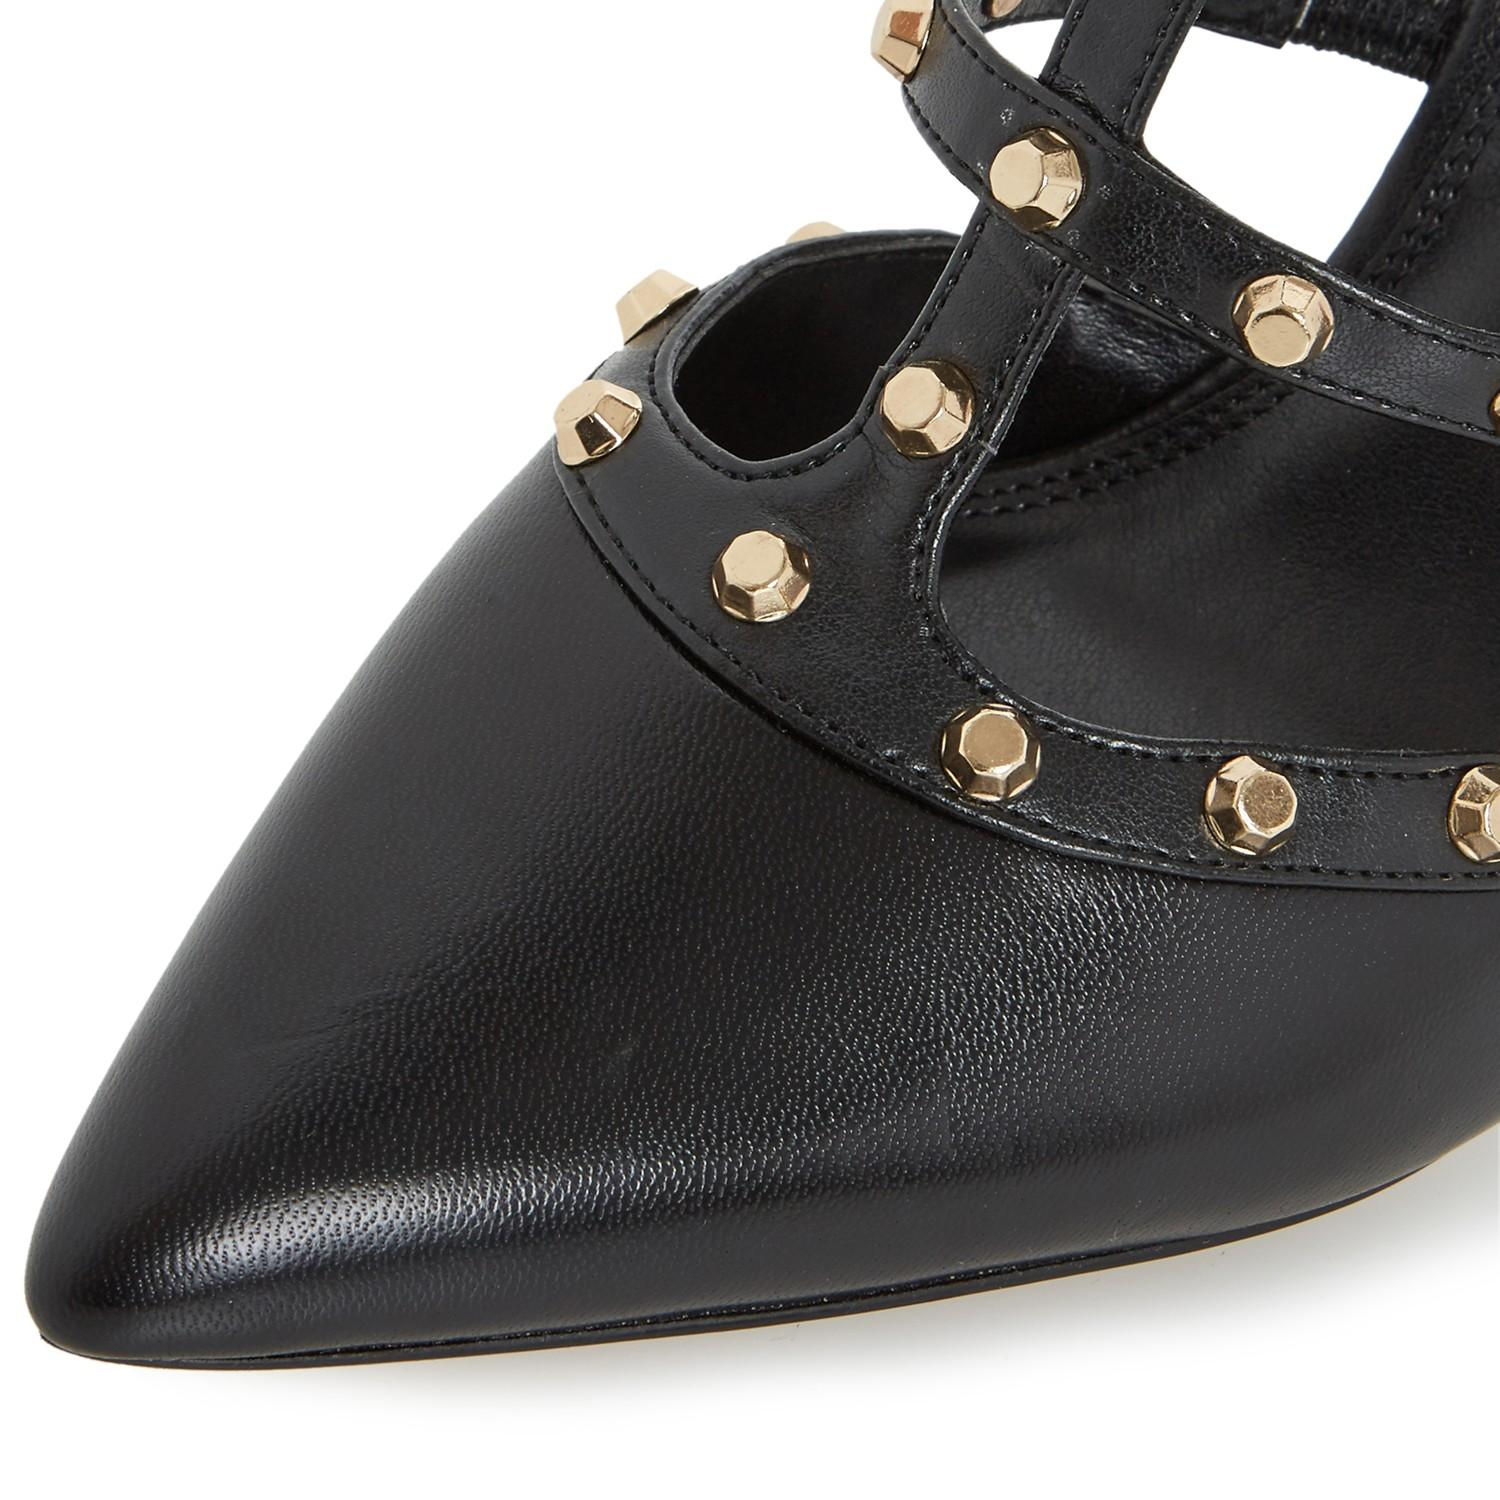 dafbc0f98e Dune Daenerys Studded Cut Out Court Shoes in Black - Lyst